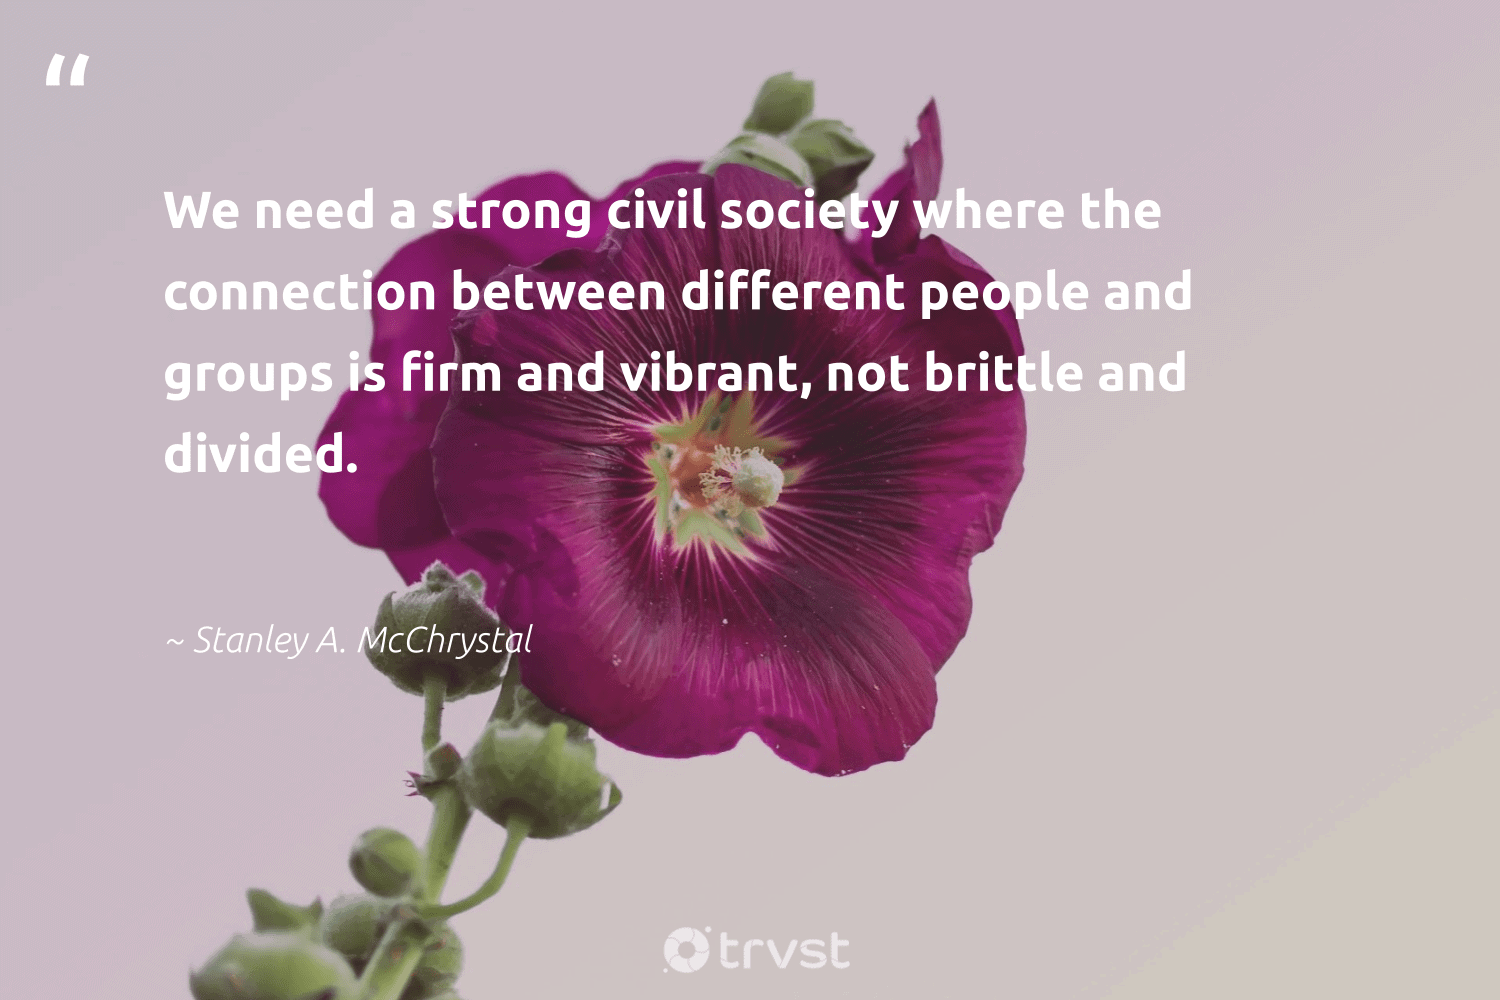 """""""We need a strong civil society where the connection between different people and groups is firm and vibrant, not brittle and divided.""""  - Stanley A. McChrystal #trvst #quotes #society #weareallone #gogreen #equalopportunity #thinkgreen #giveback #dosomething #communities #bethechange #betterplanet"""